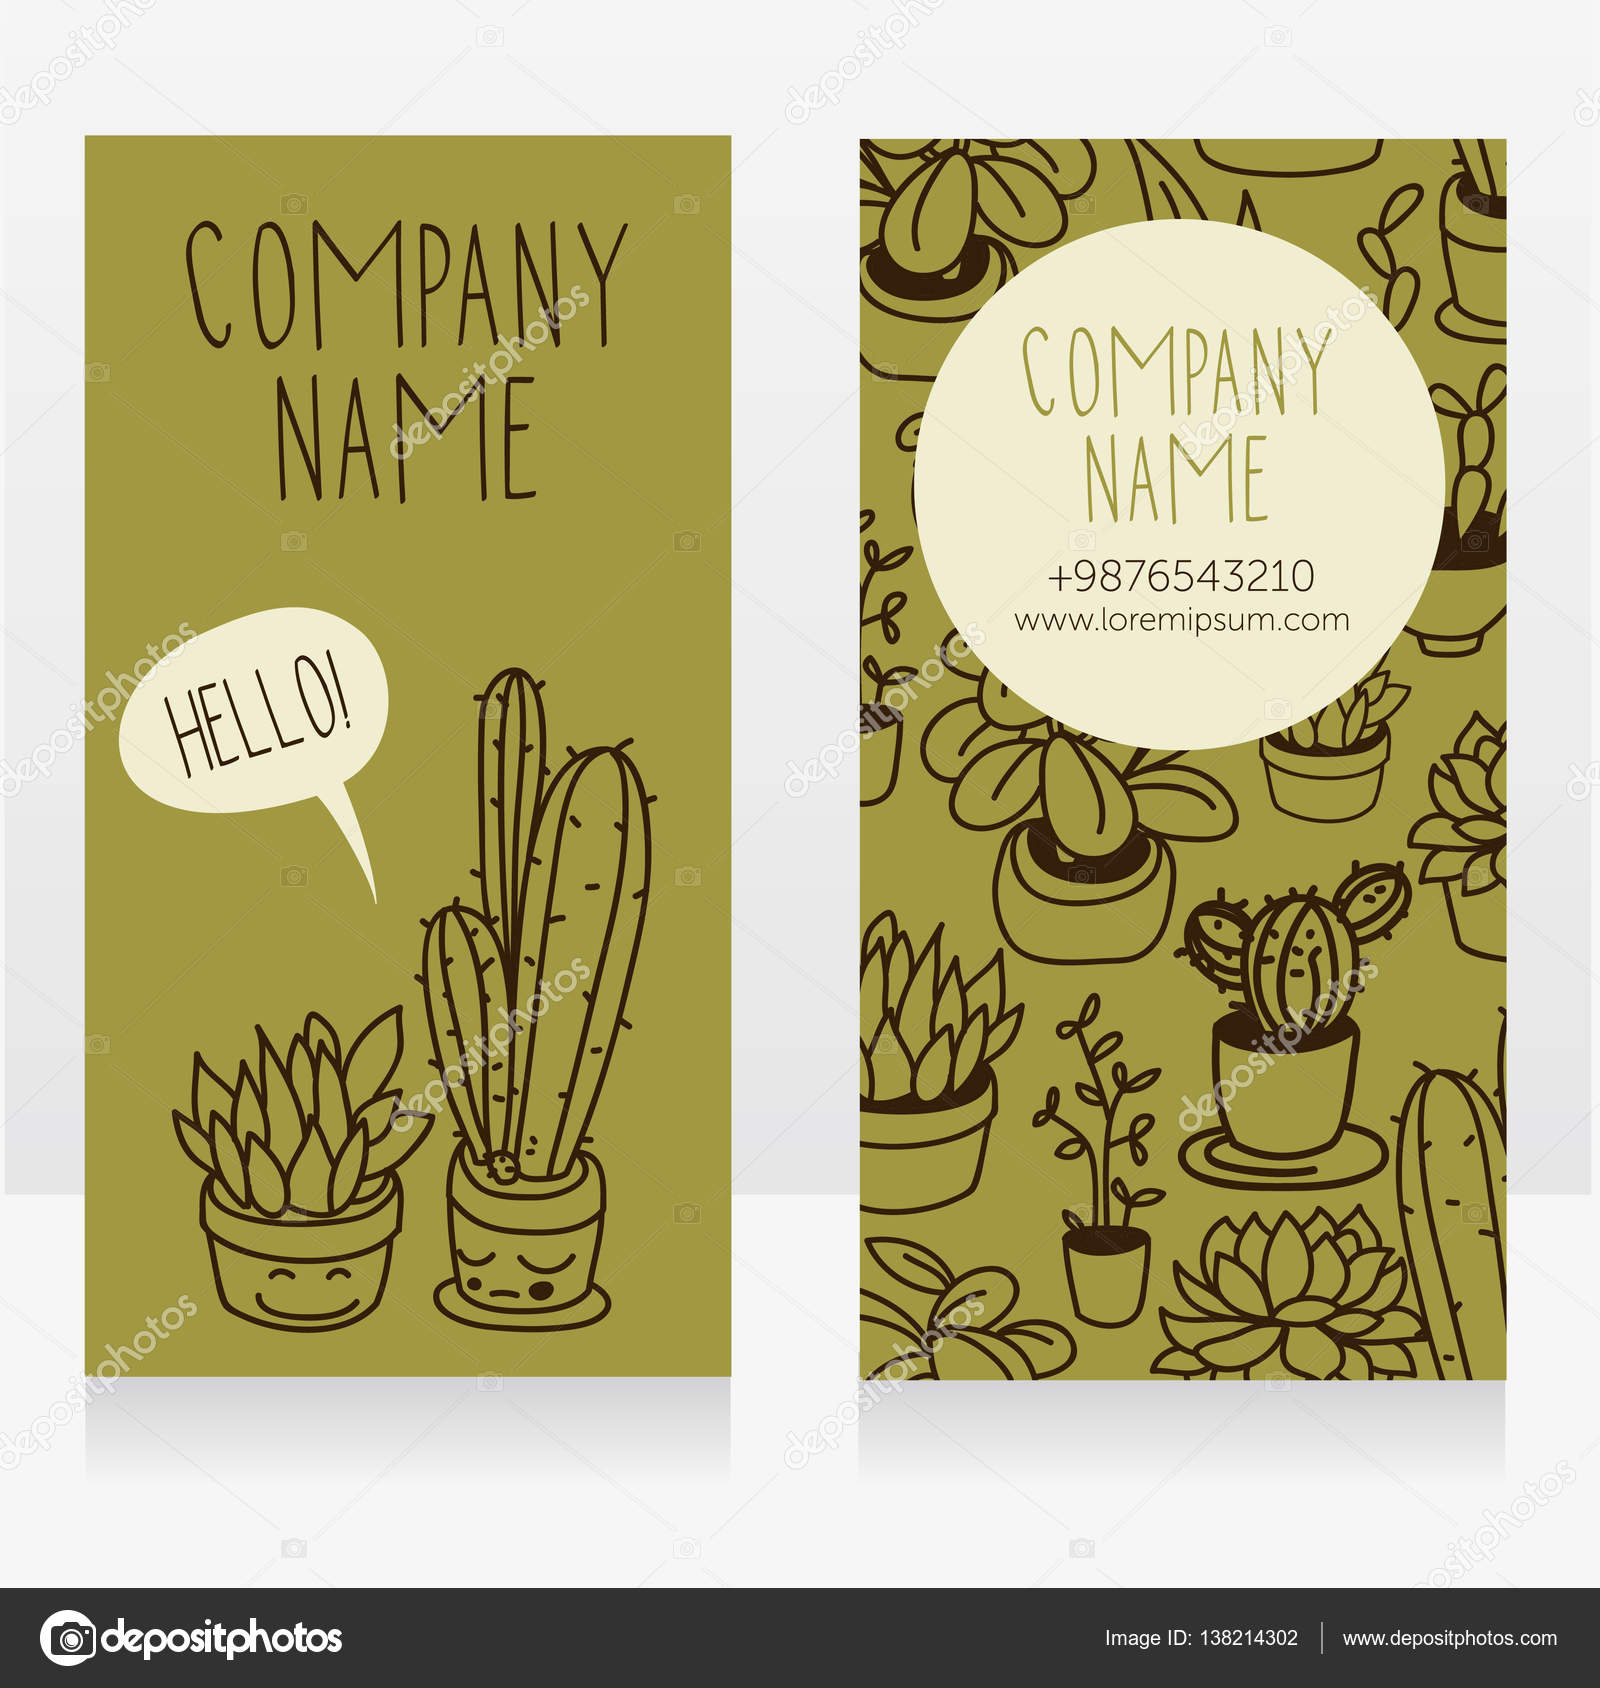 Template for business cards with cute potted plants with funny template for business cards with cute potted plants with funny cartoon faces and speech bubble reheart Images